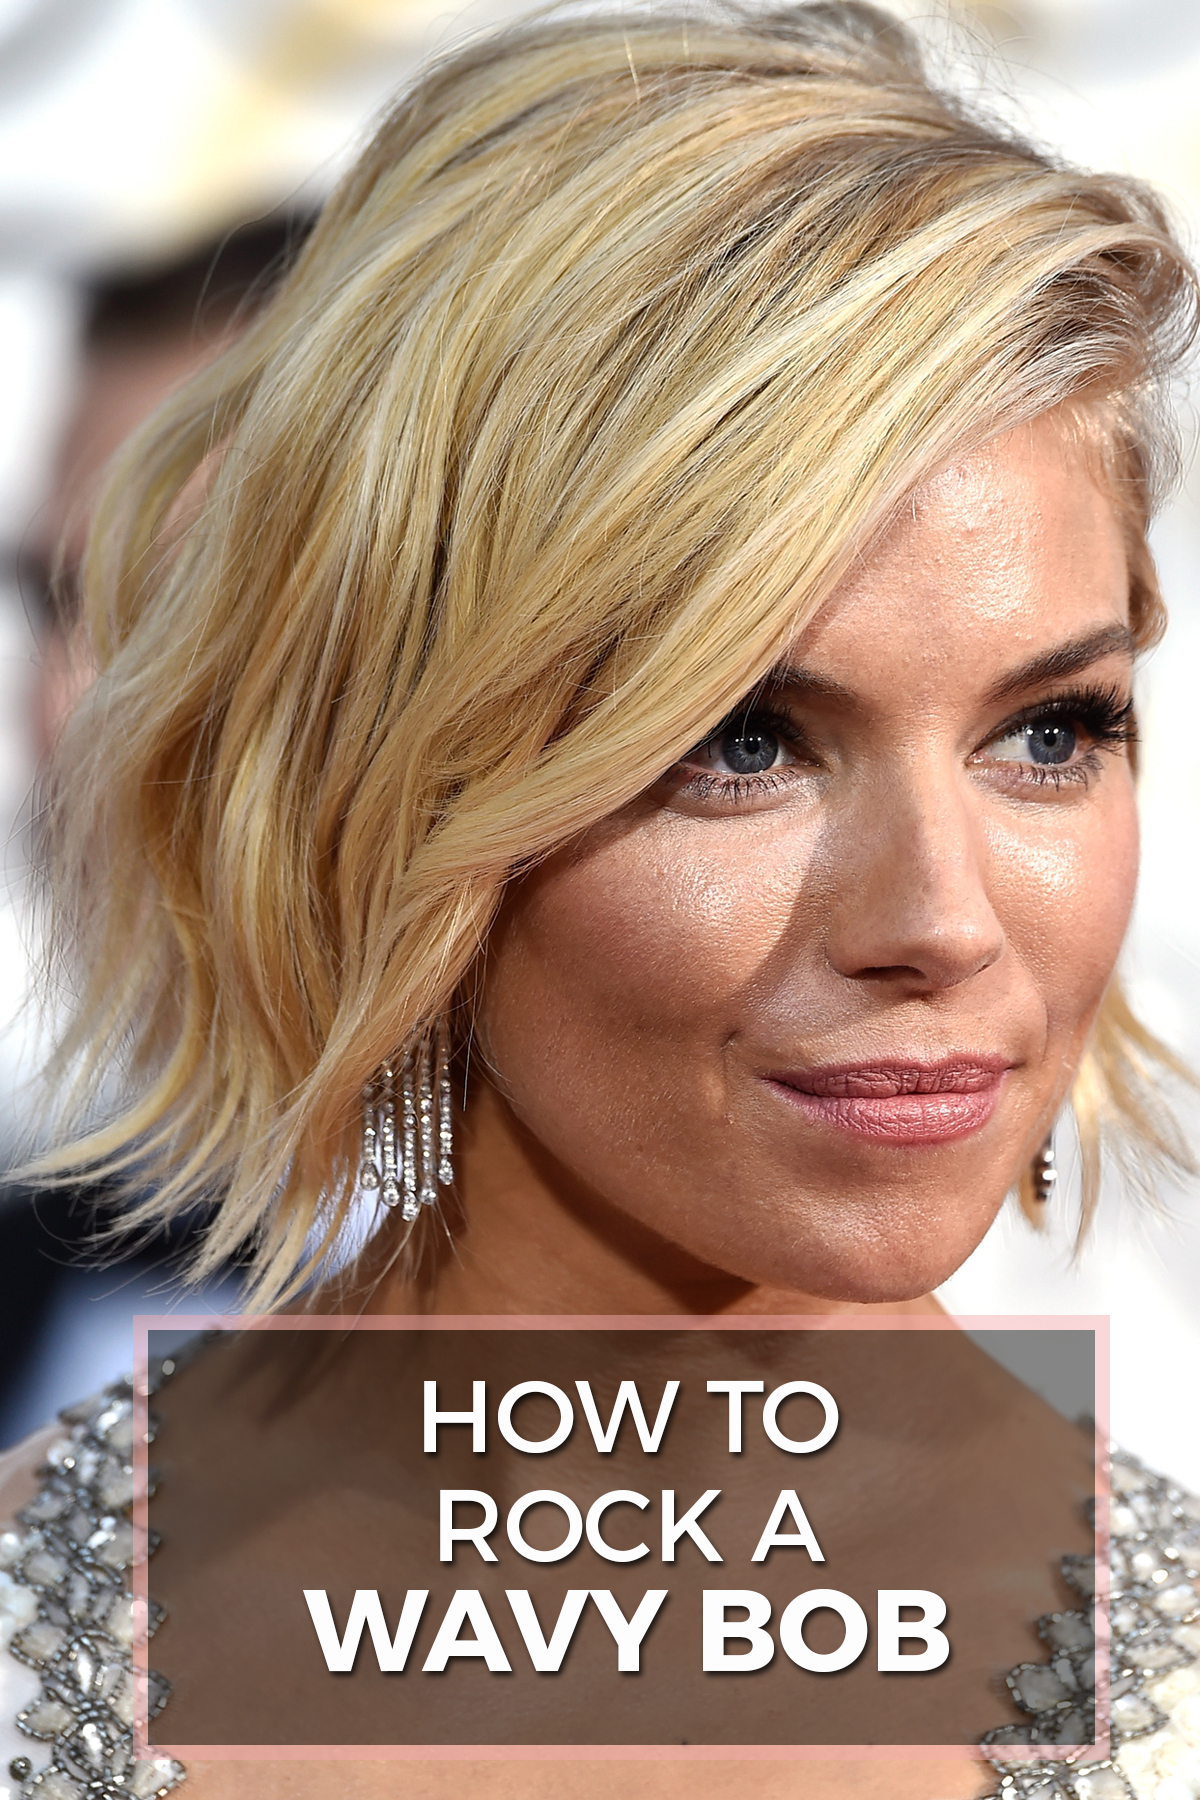 Wavy Bob Hairstyles How To Rock This Summers It Cut HuffPost - Fine hair styling